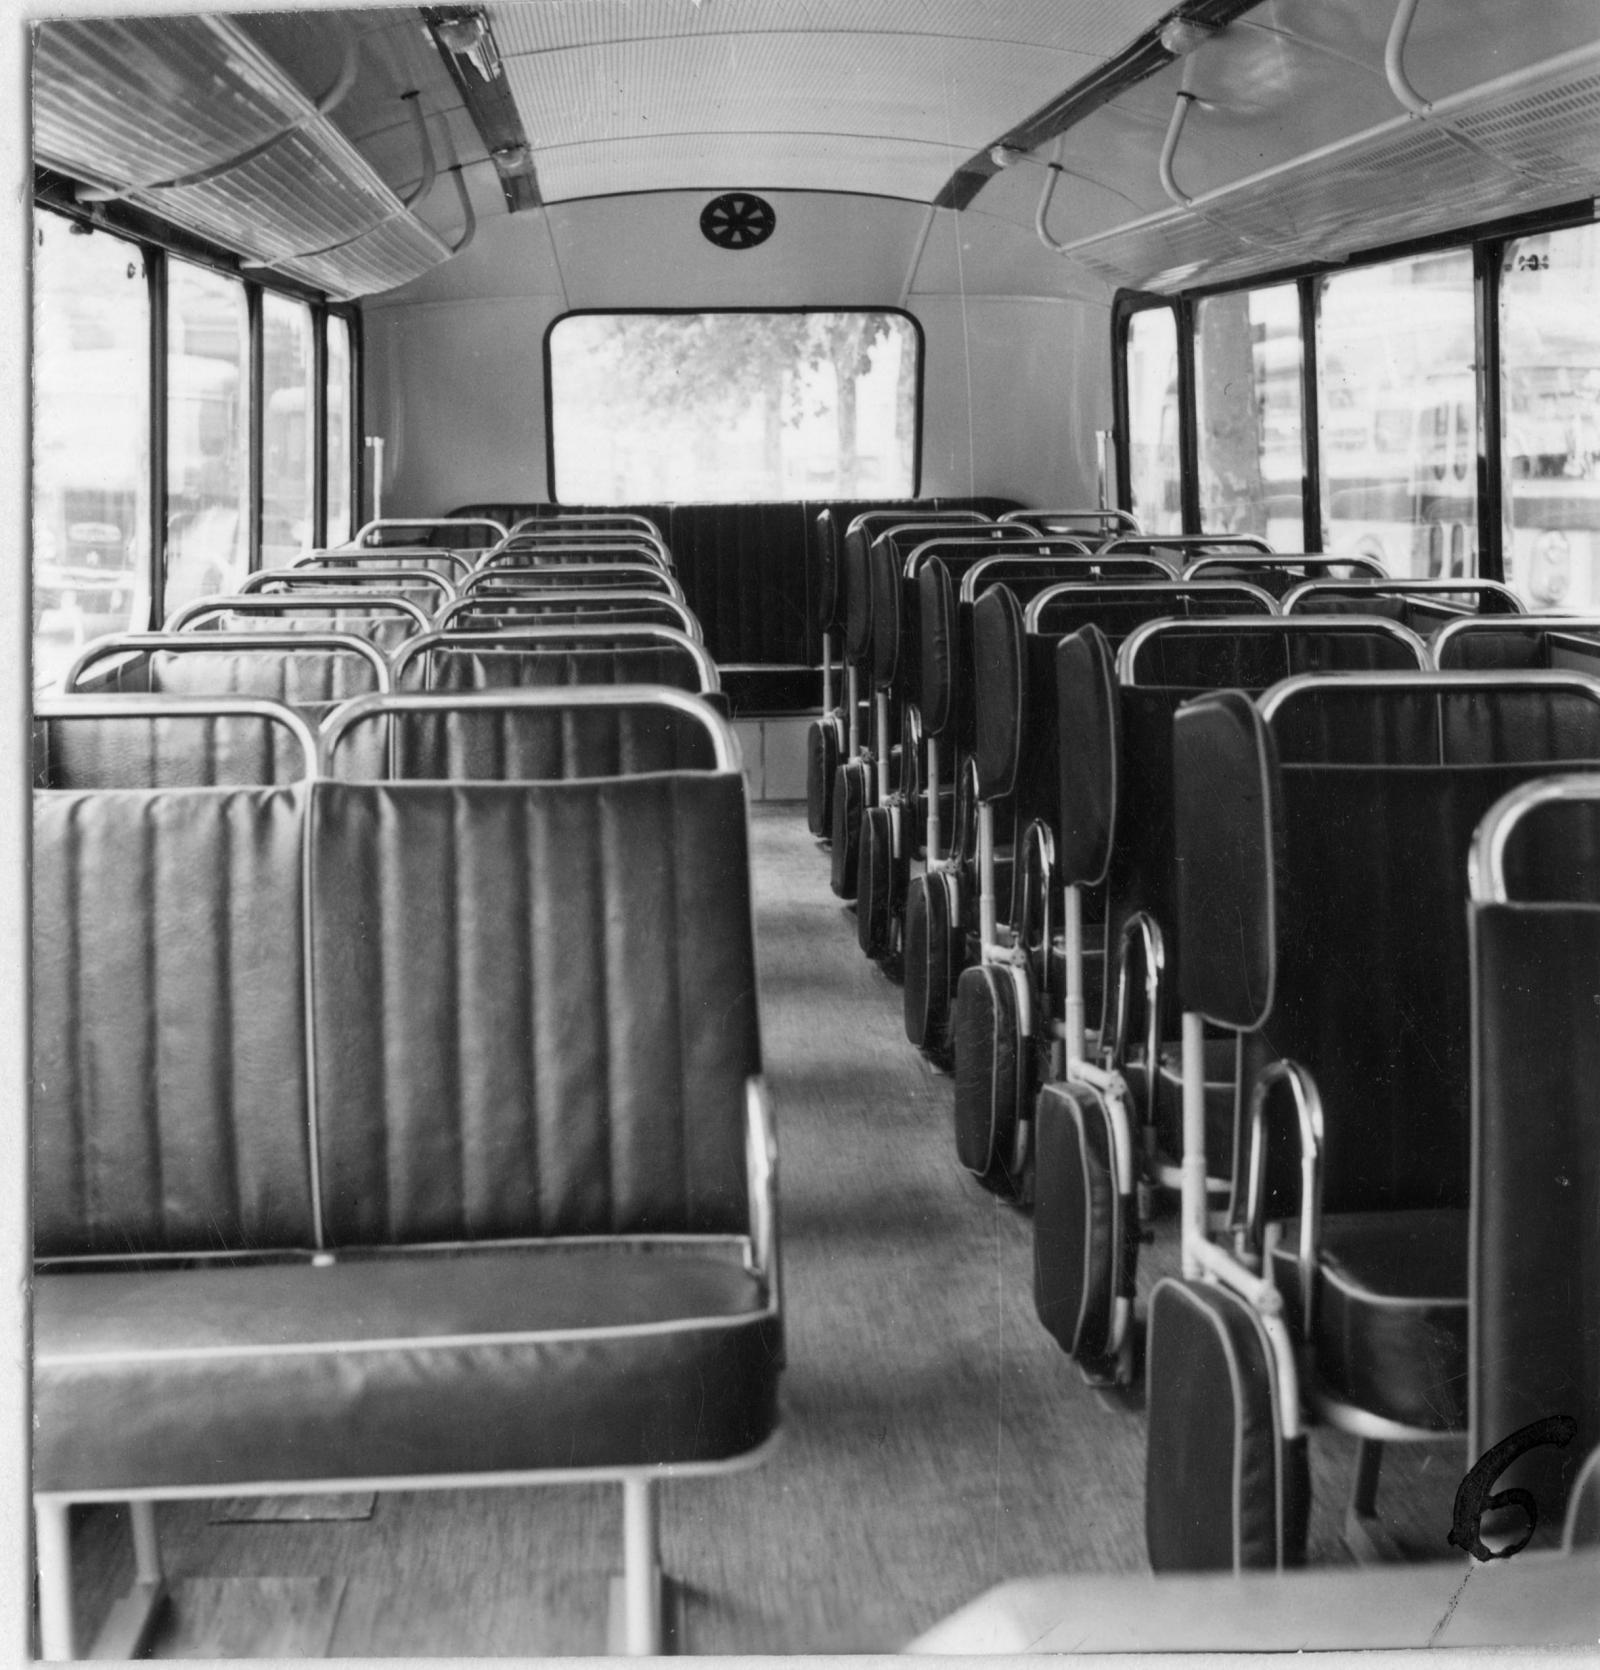 Inside the U23 school bus